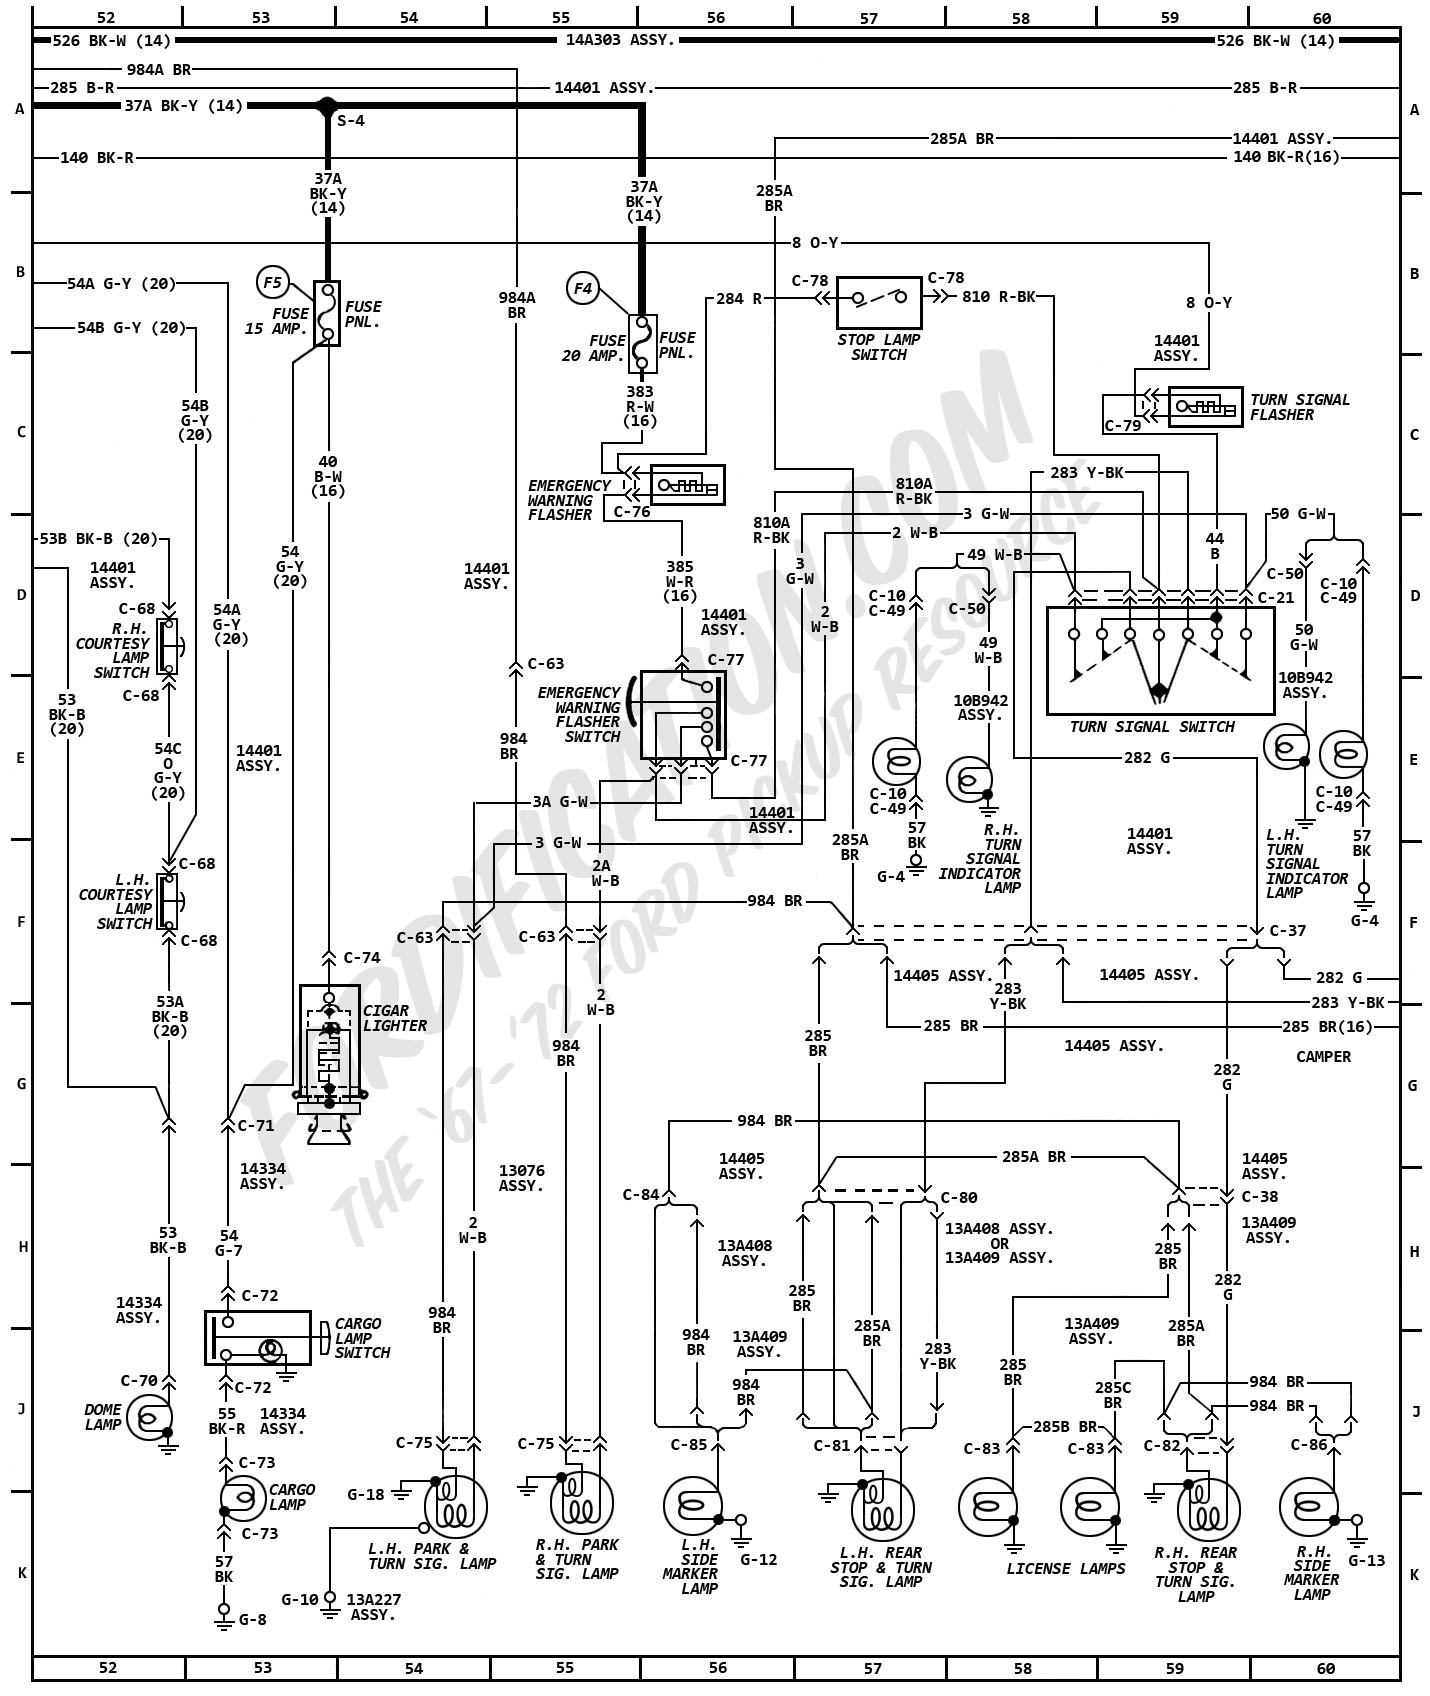 Wiring Diagram For 1988 F 250 Books Of Marinco 24 Volt 1972 Ford F250 Ignition Simple Rh David Huggett Co Uk